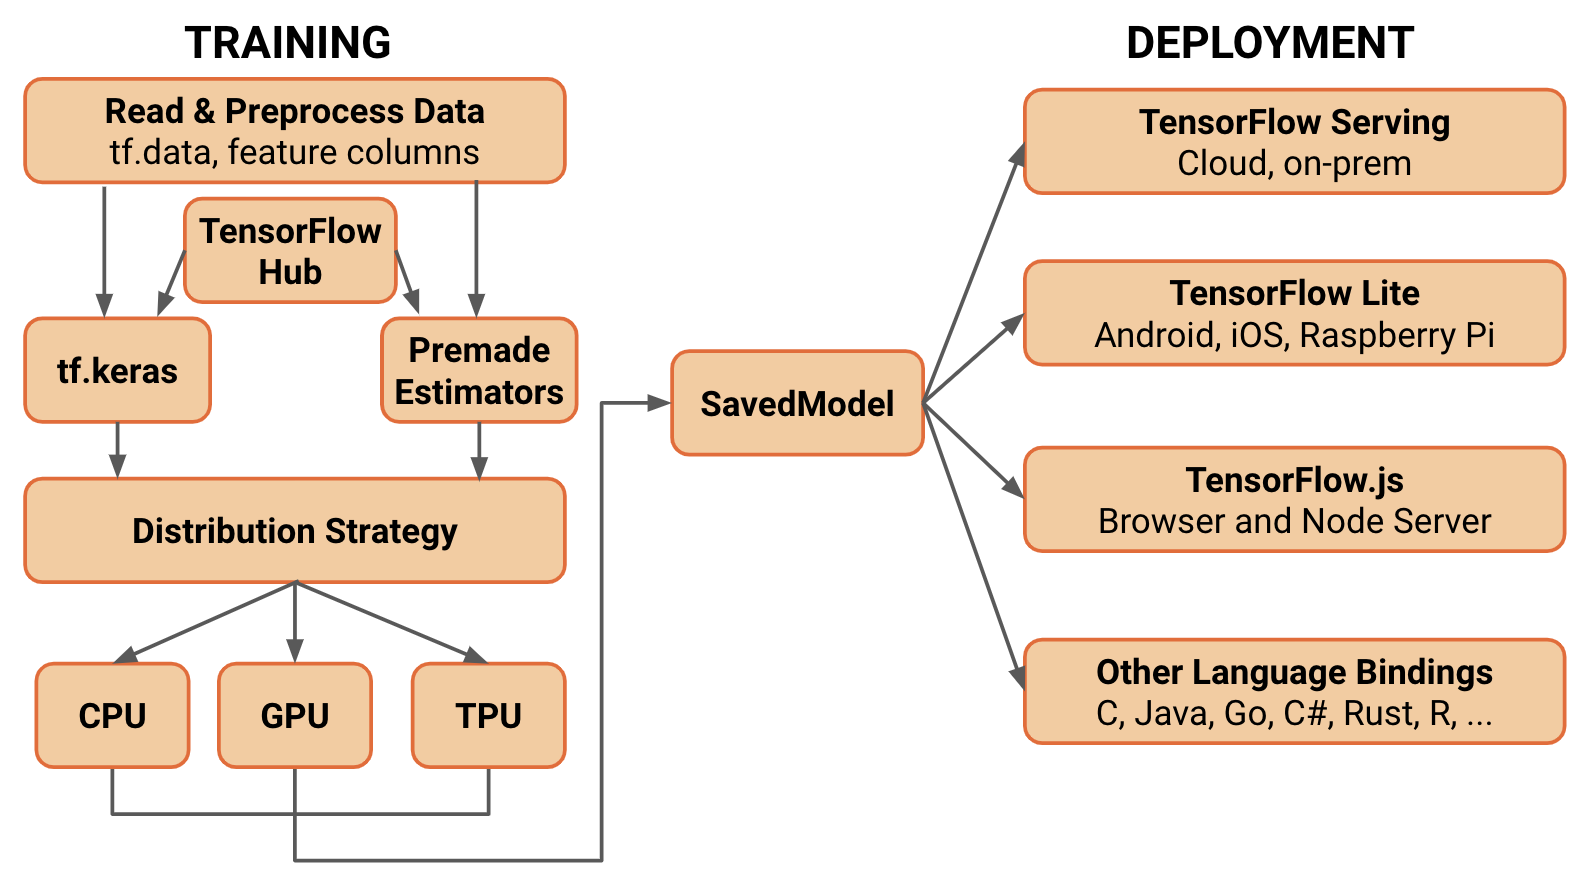 the new architecture of TensorFlow 2.0 using a simplified, conceptual diagram